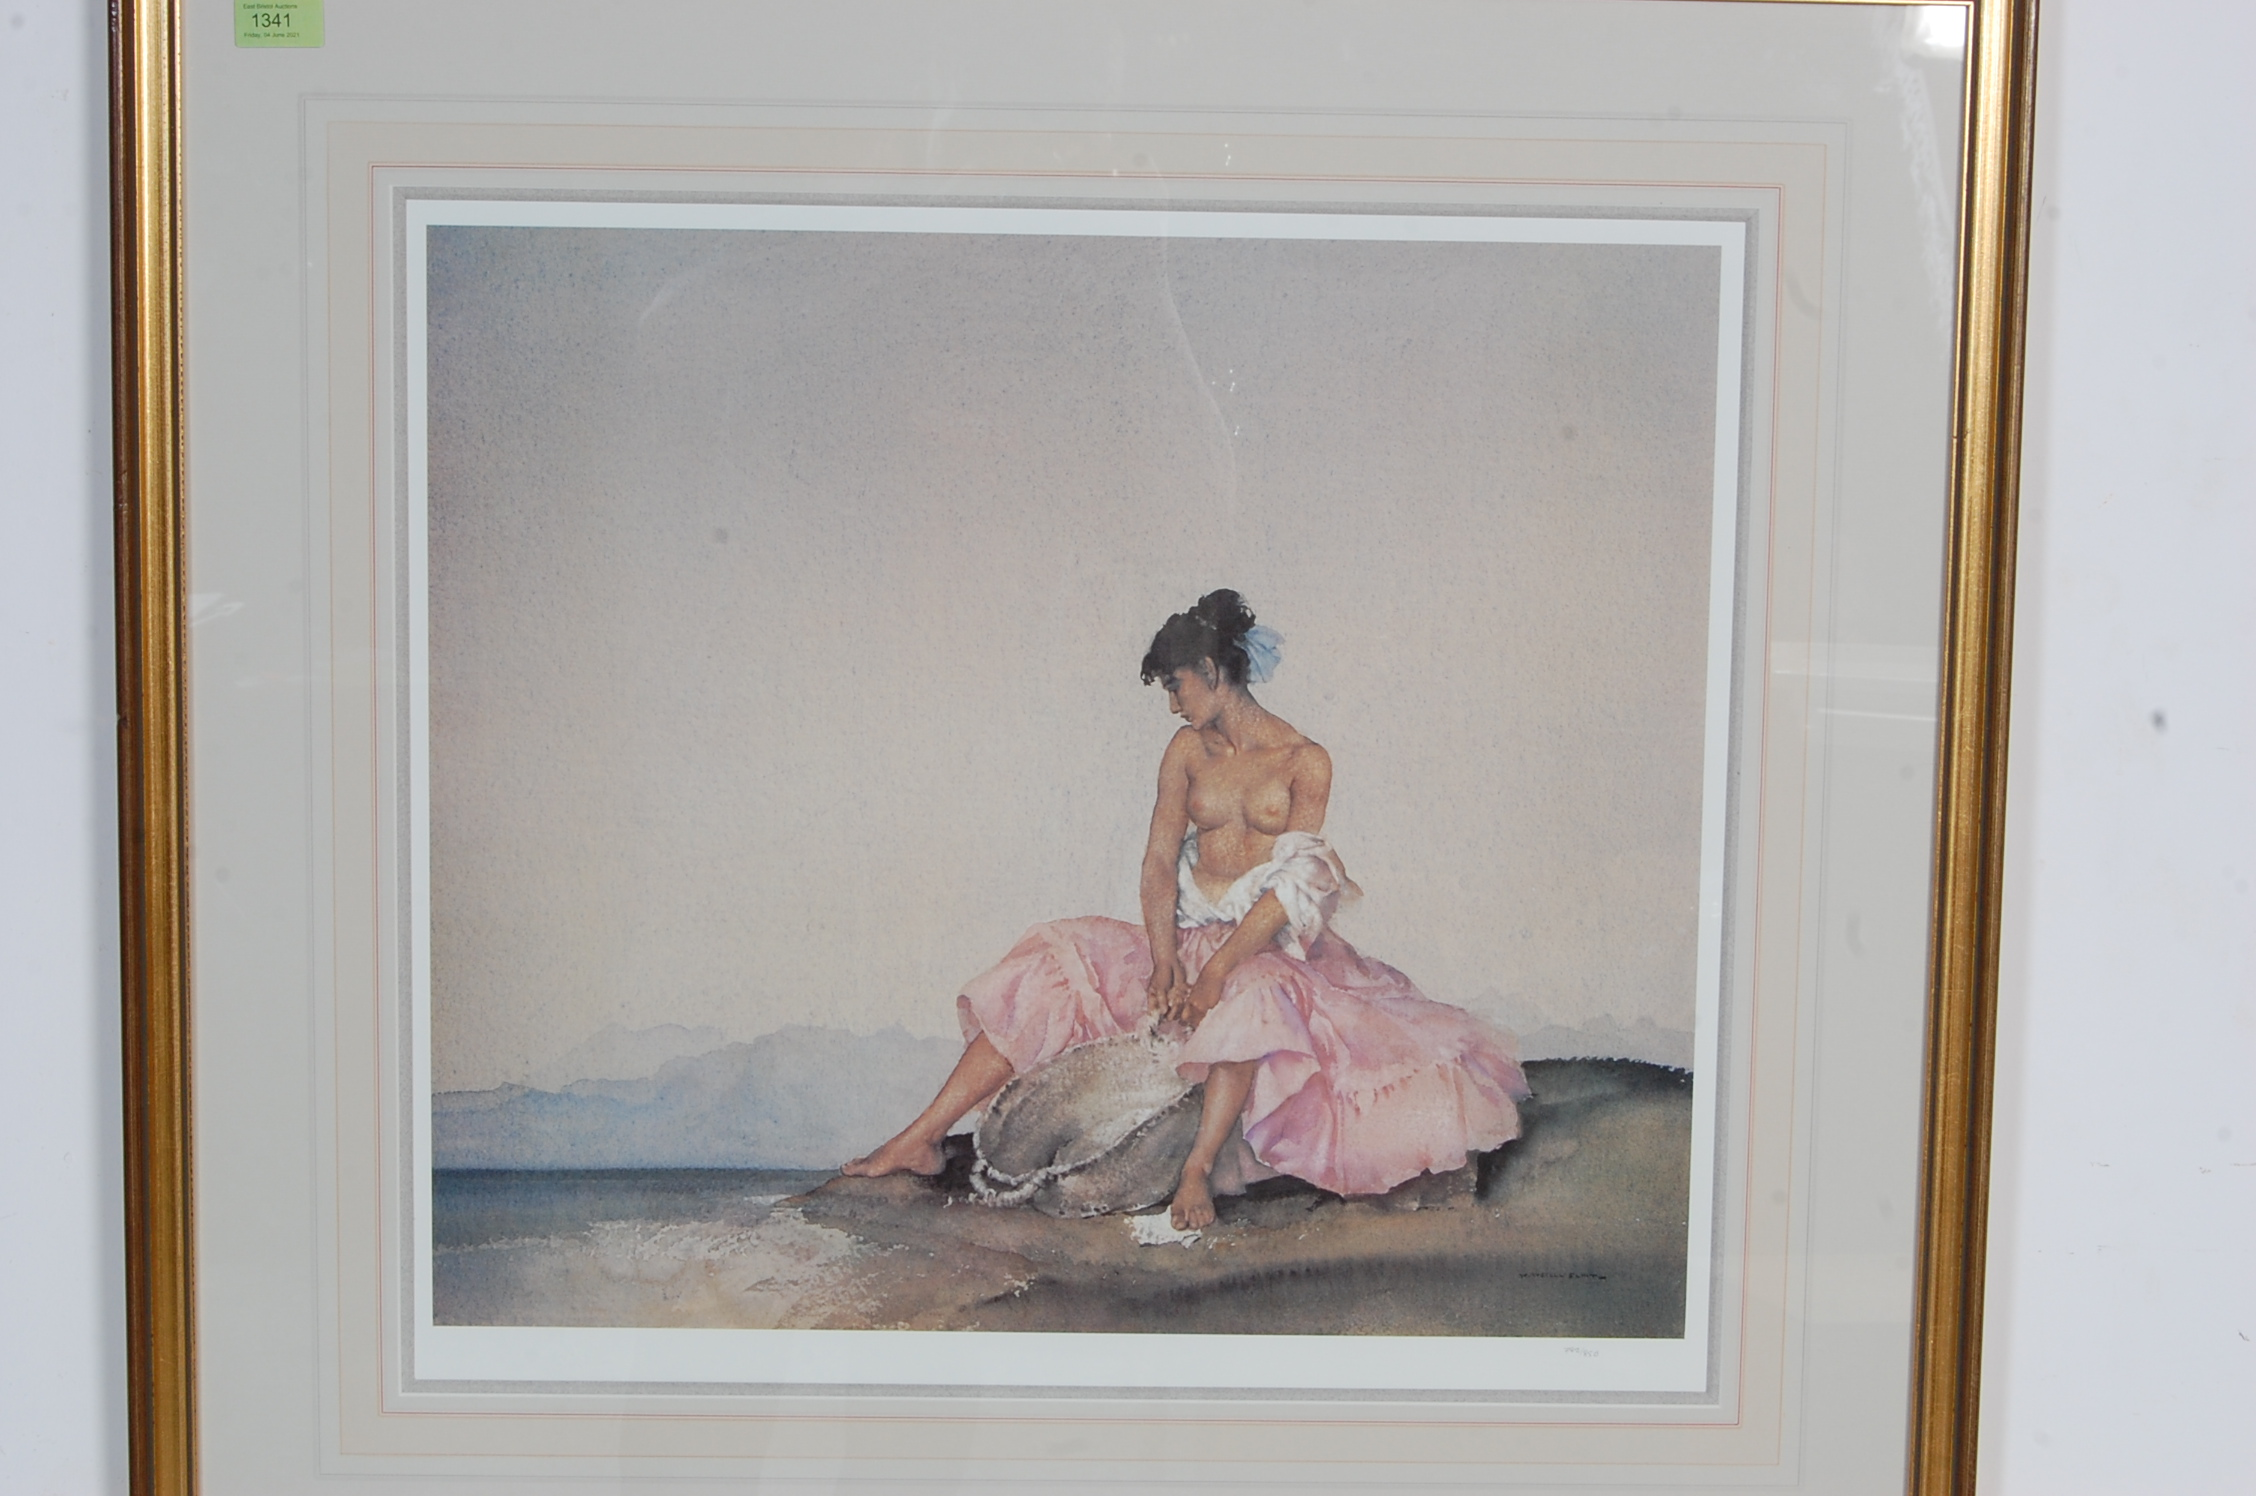 WILLIAM RUSSELL FLINT ARIADNE LIMITED EDTION PRINT - Image 2 of 6